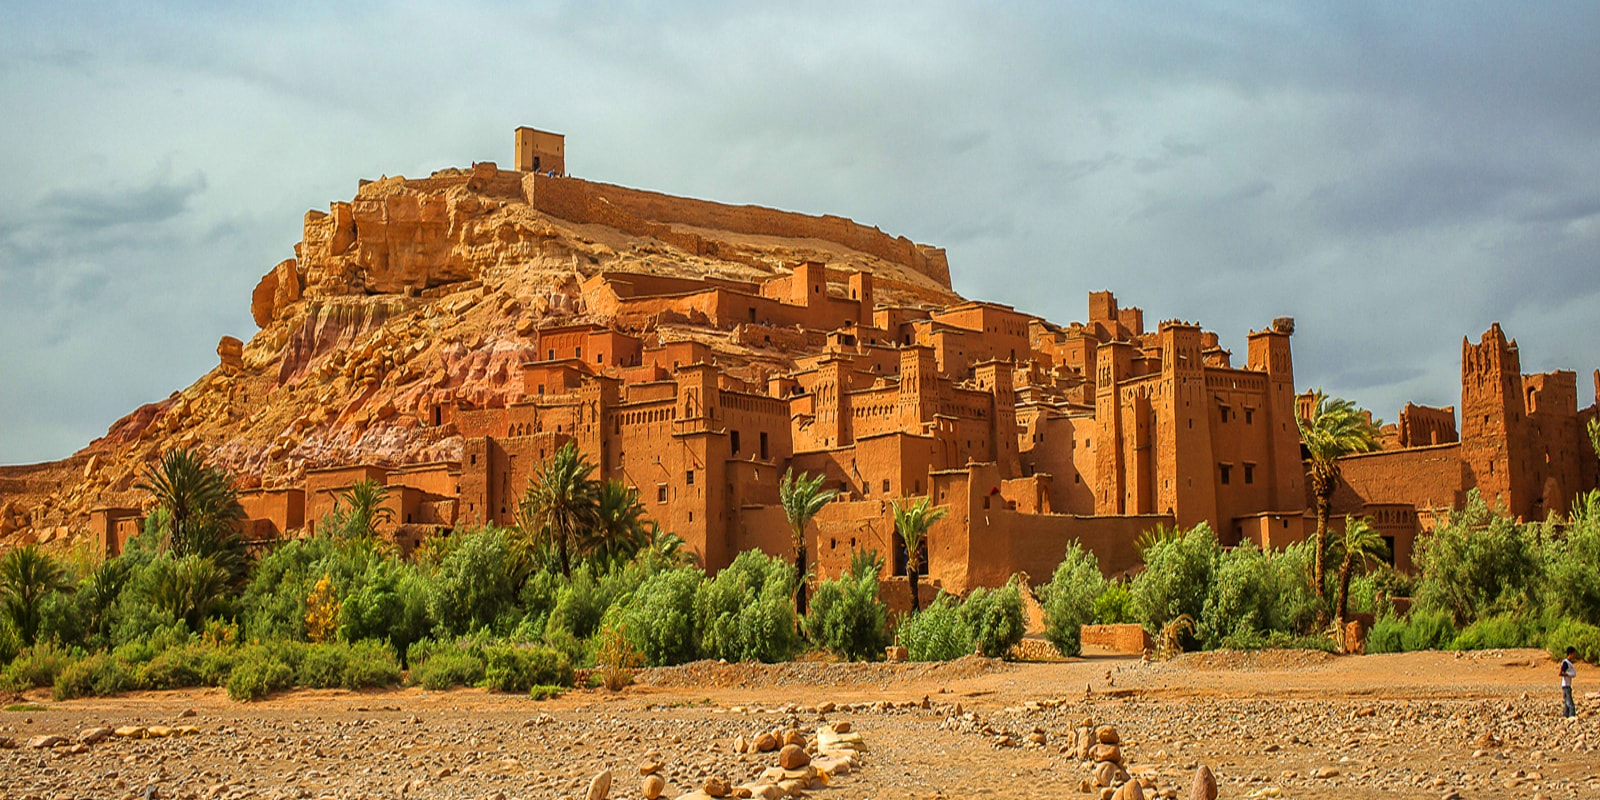 Merzouga 3 days /2 nights from Marrakech